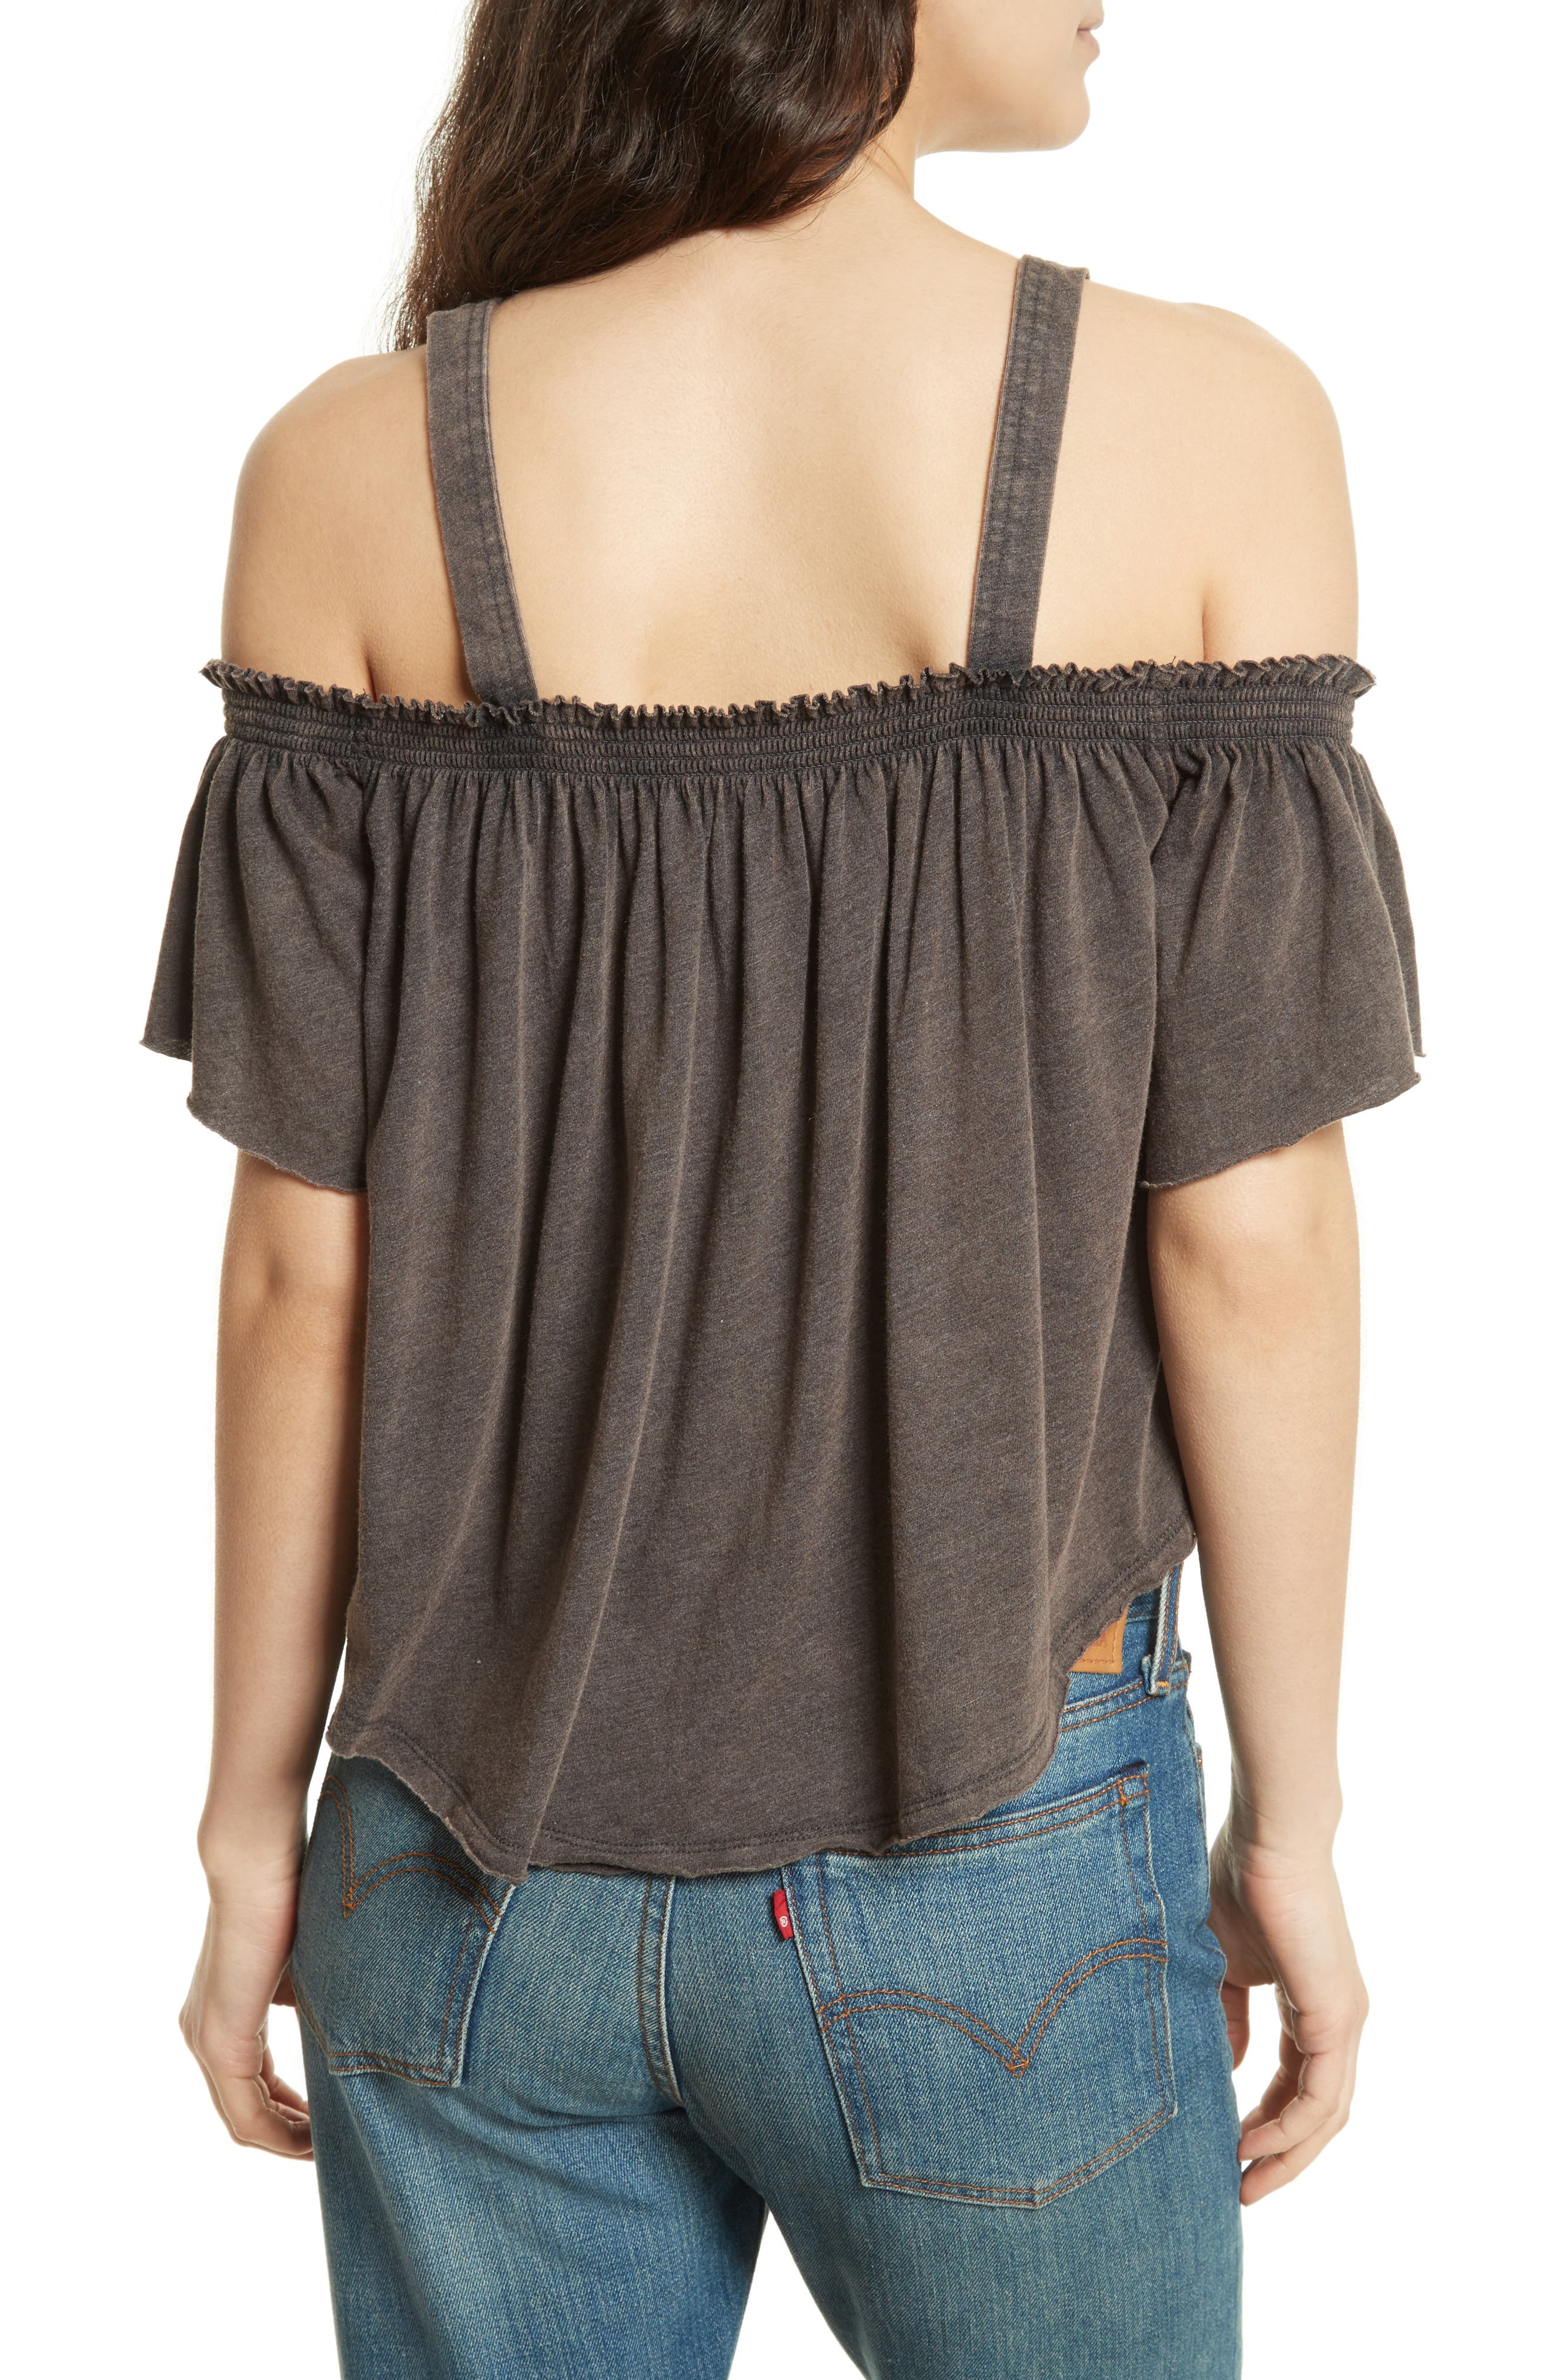 FREE PEOPLE,                             Darling Off the Shoulder Top,                             Alternate thumbnail 2, color,                             001